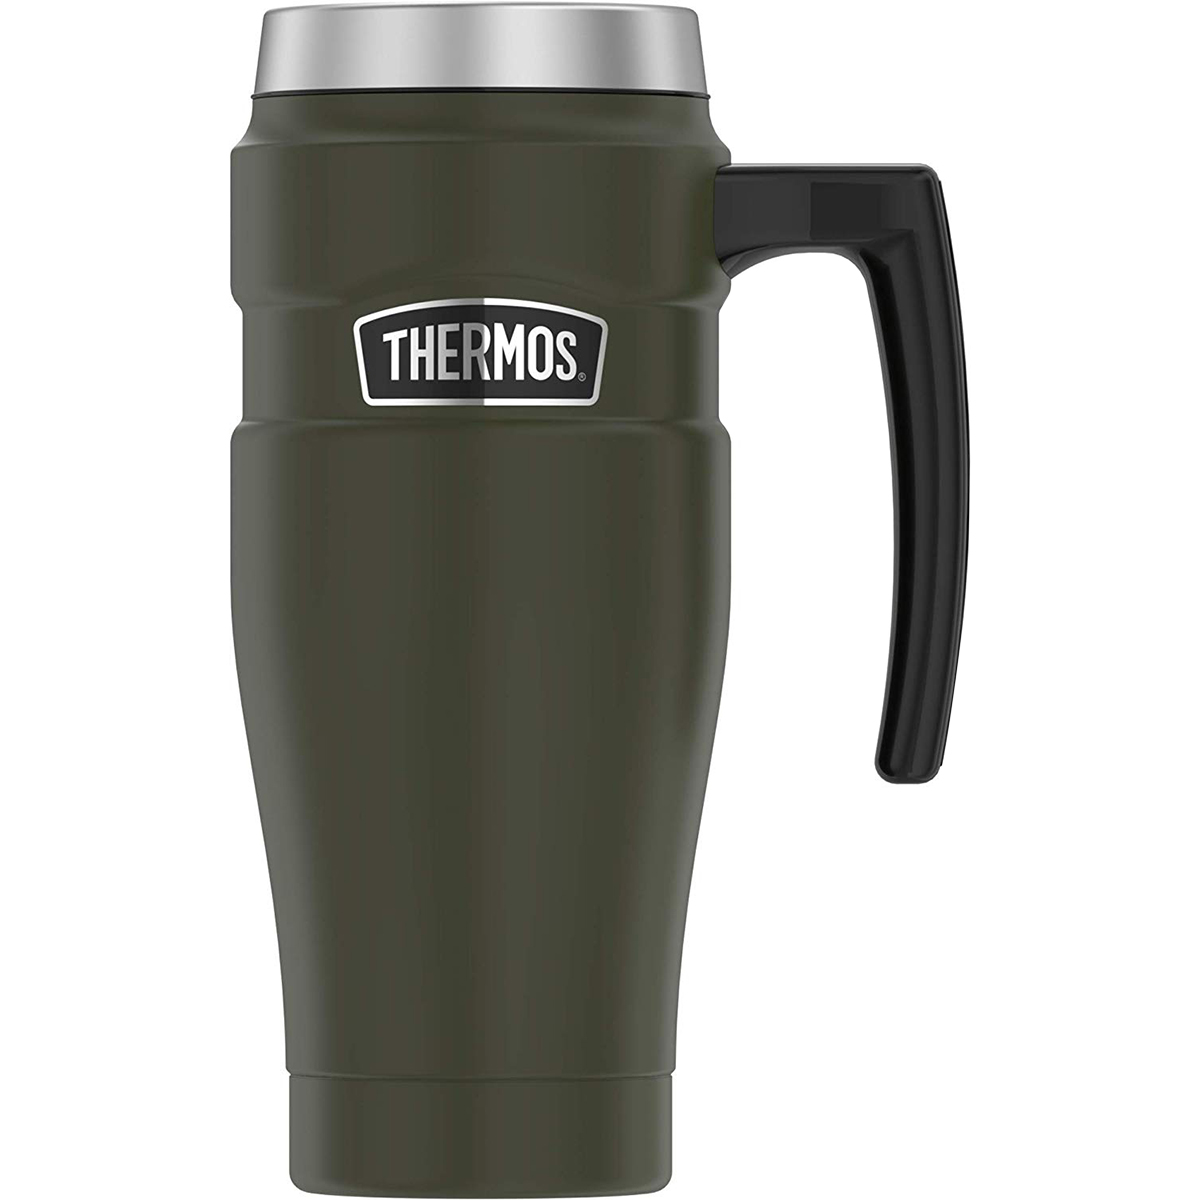 thumbnail 15 - Thermos 16 oz. Stainless King Insulated Stainless Steel Travel Mug with Handle